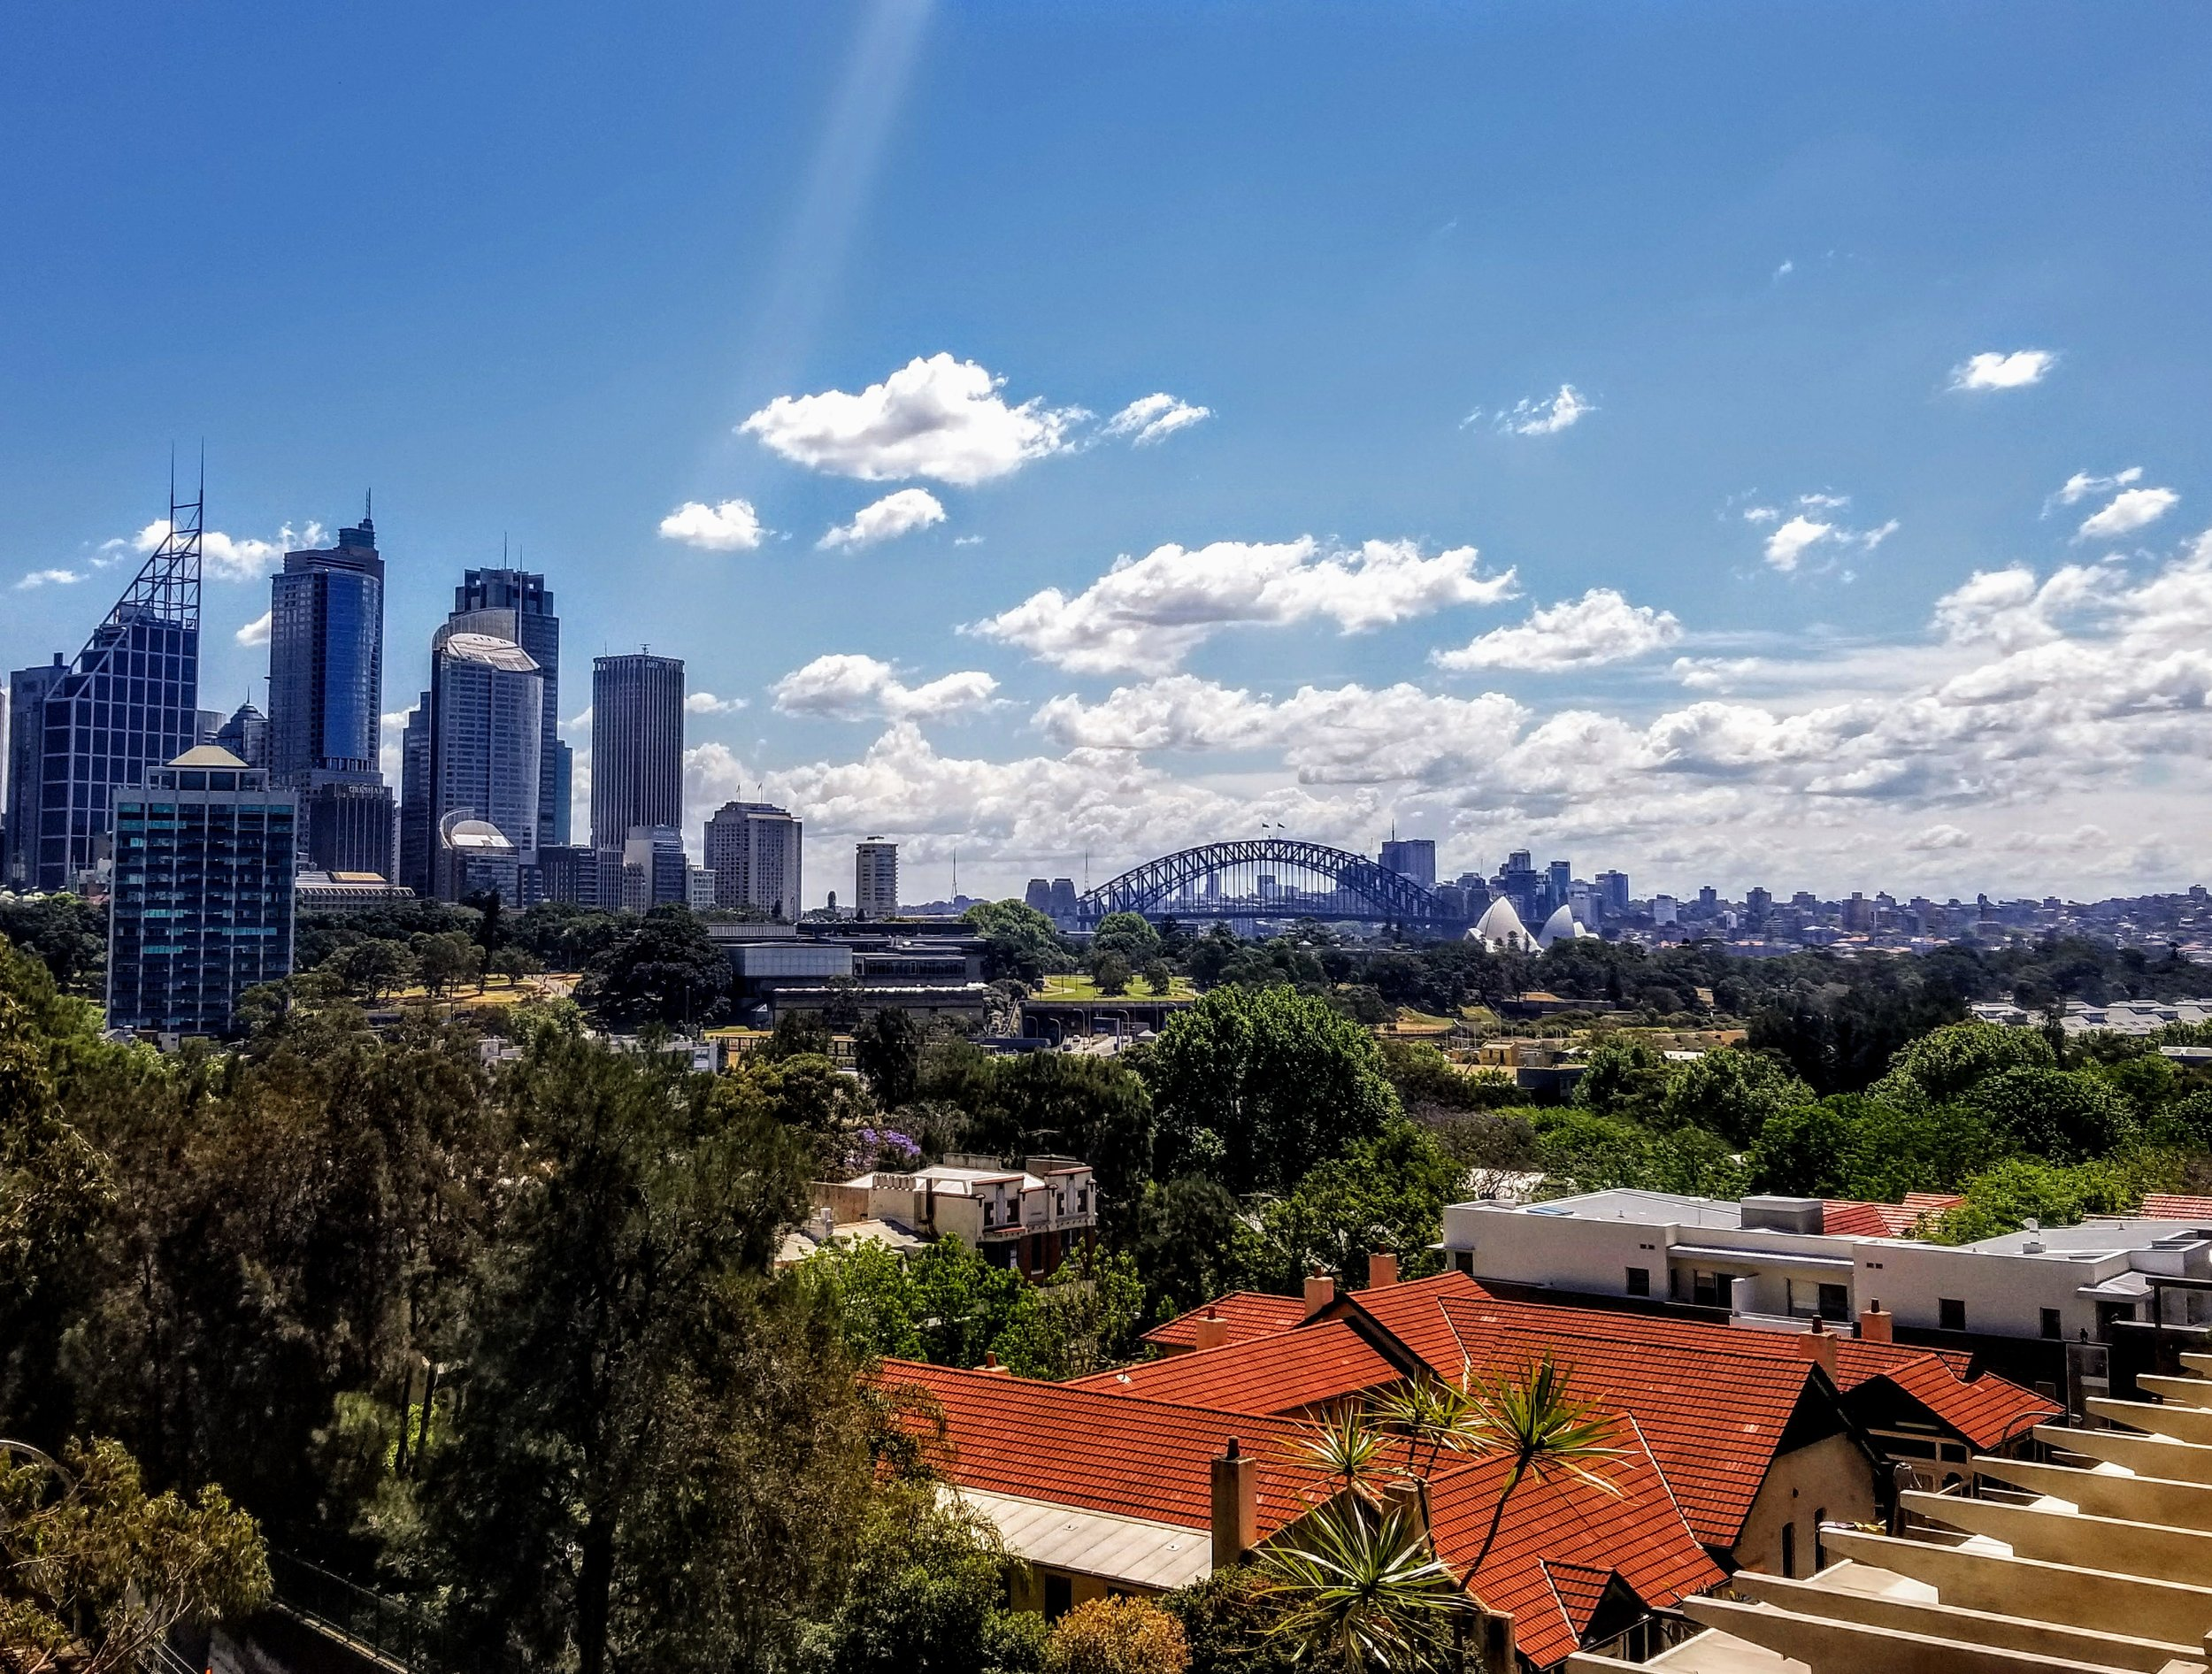 View from the huge deck of our Sydney Airbnb. One of my best finds ever.